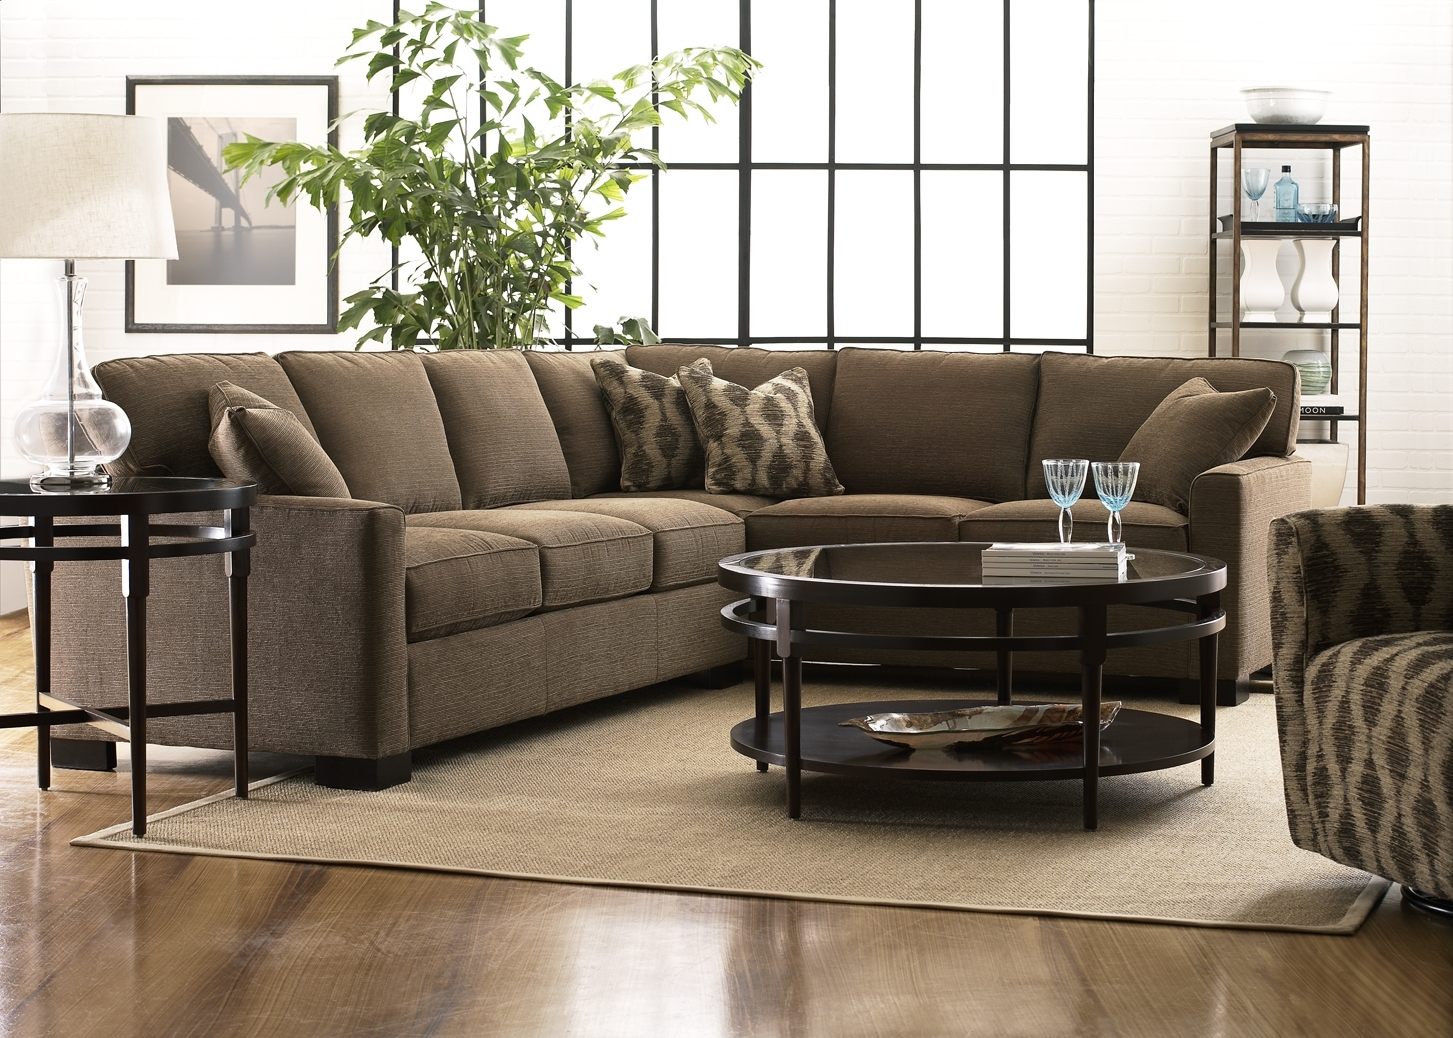 Small Room Design: Best Sofas For Small Living Rooms Day Beds For With Regard To Sectional Sofas For Small Living Rooms (View 3 of 10)